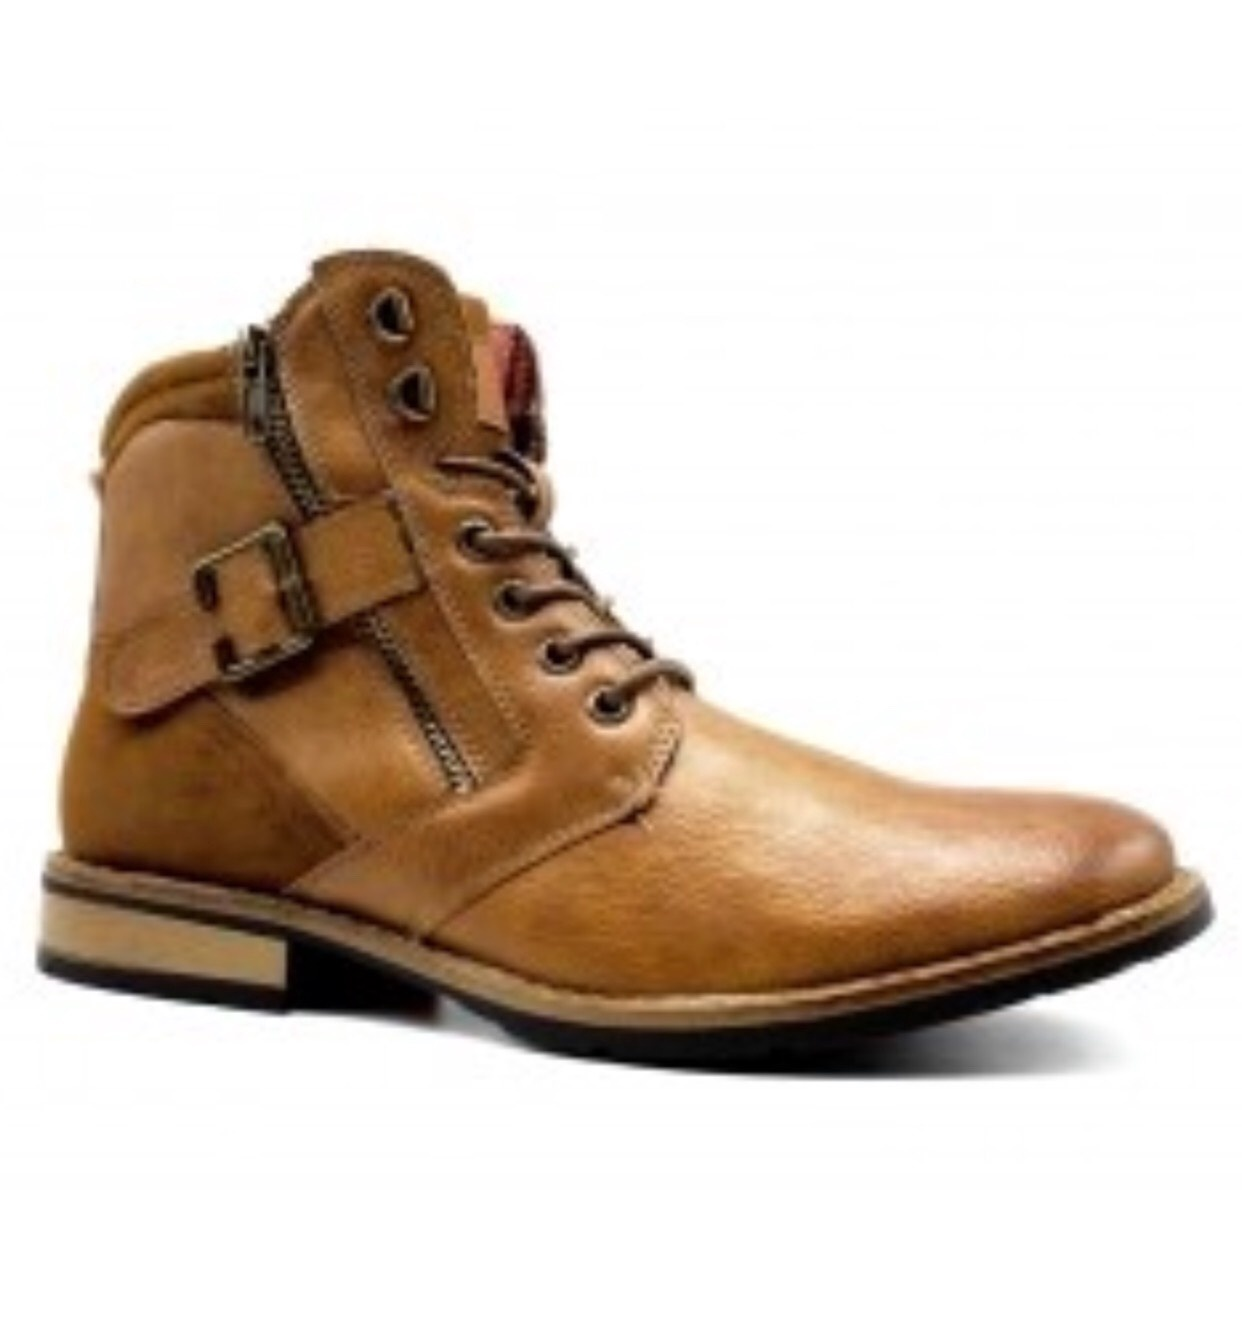 Menswear Men's Shoes - Camel Ankle Boots Zipped on Both Sides